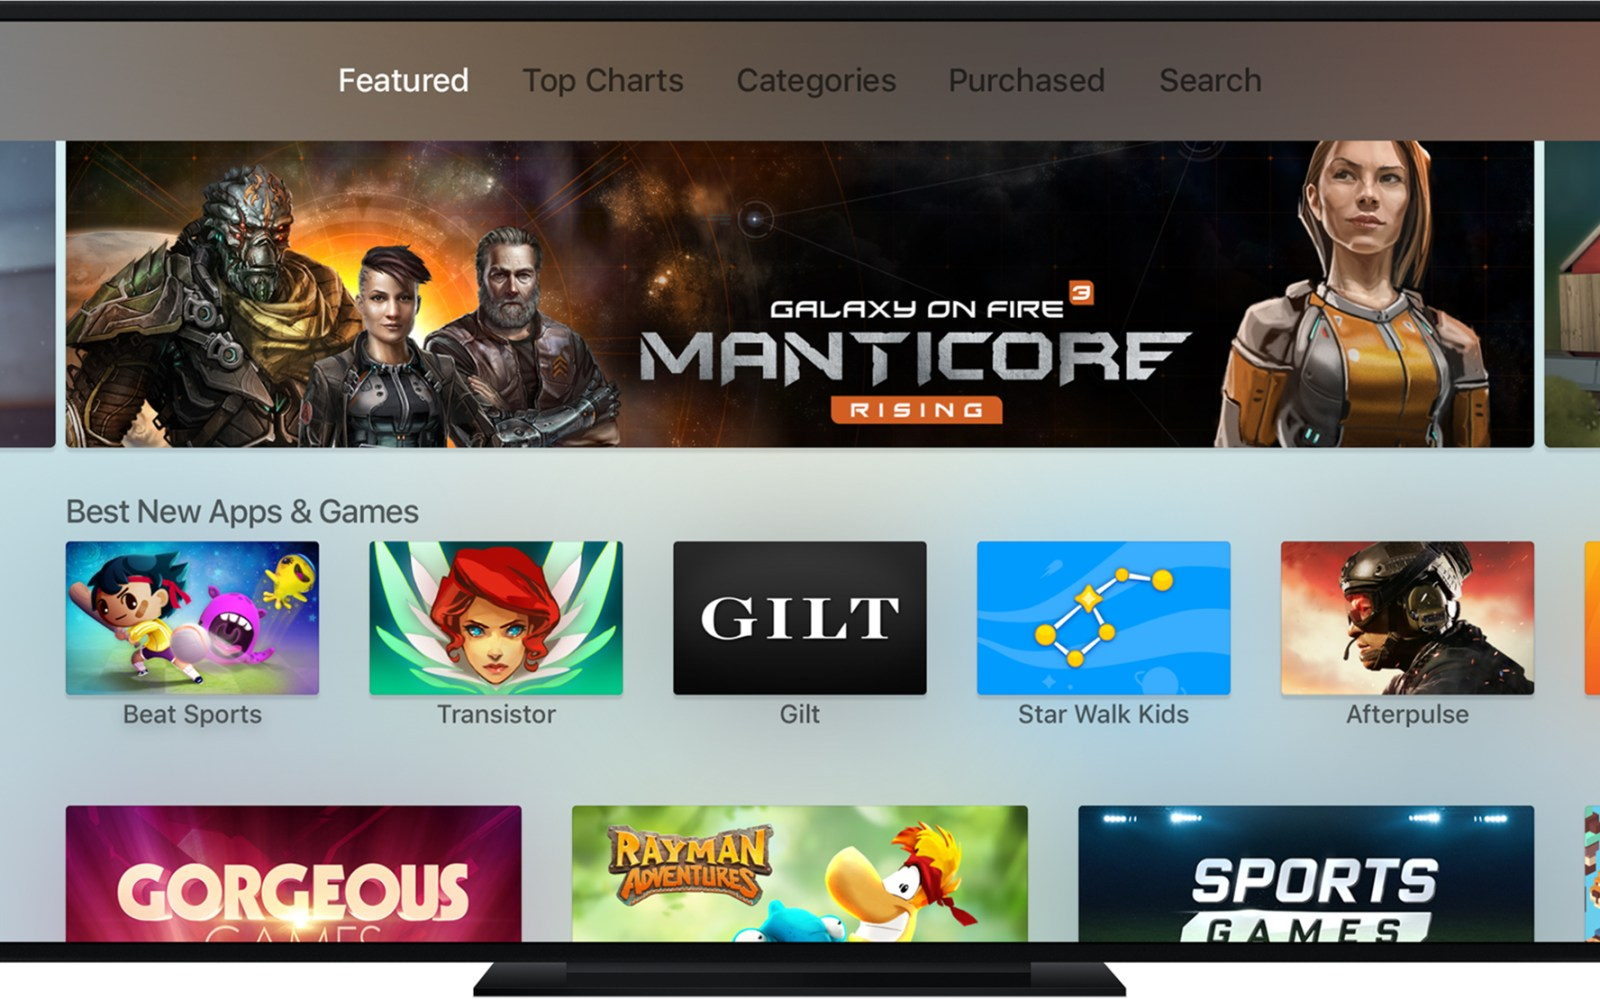 Early tvOS App Store sales charts show popularity of games, app prices substantially higher than iOS